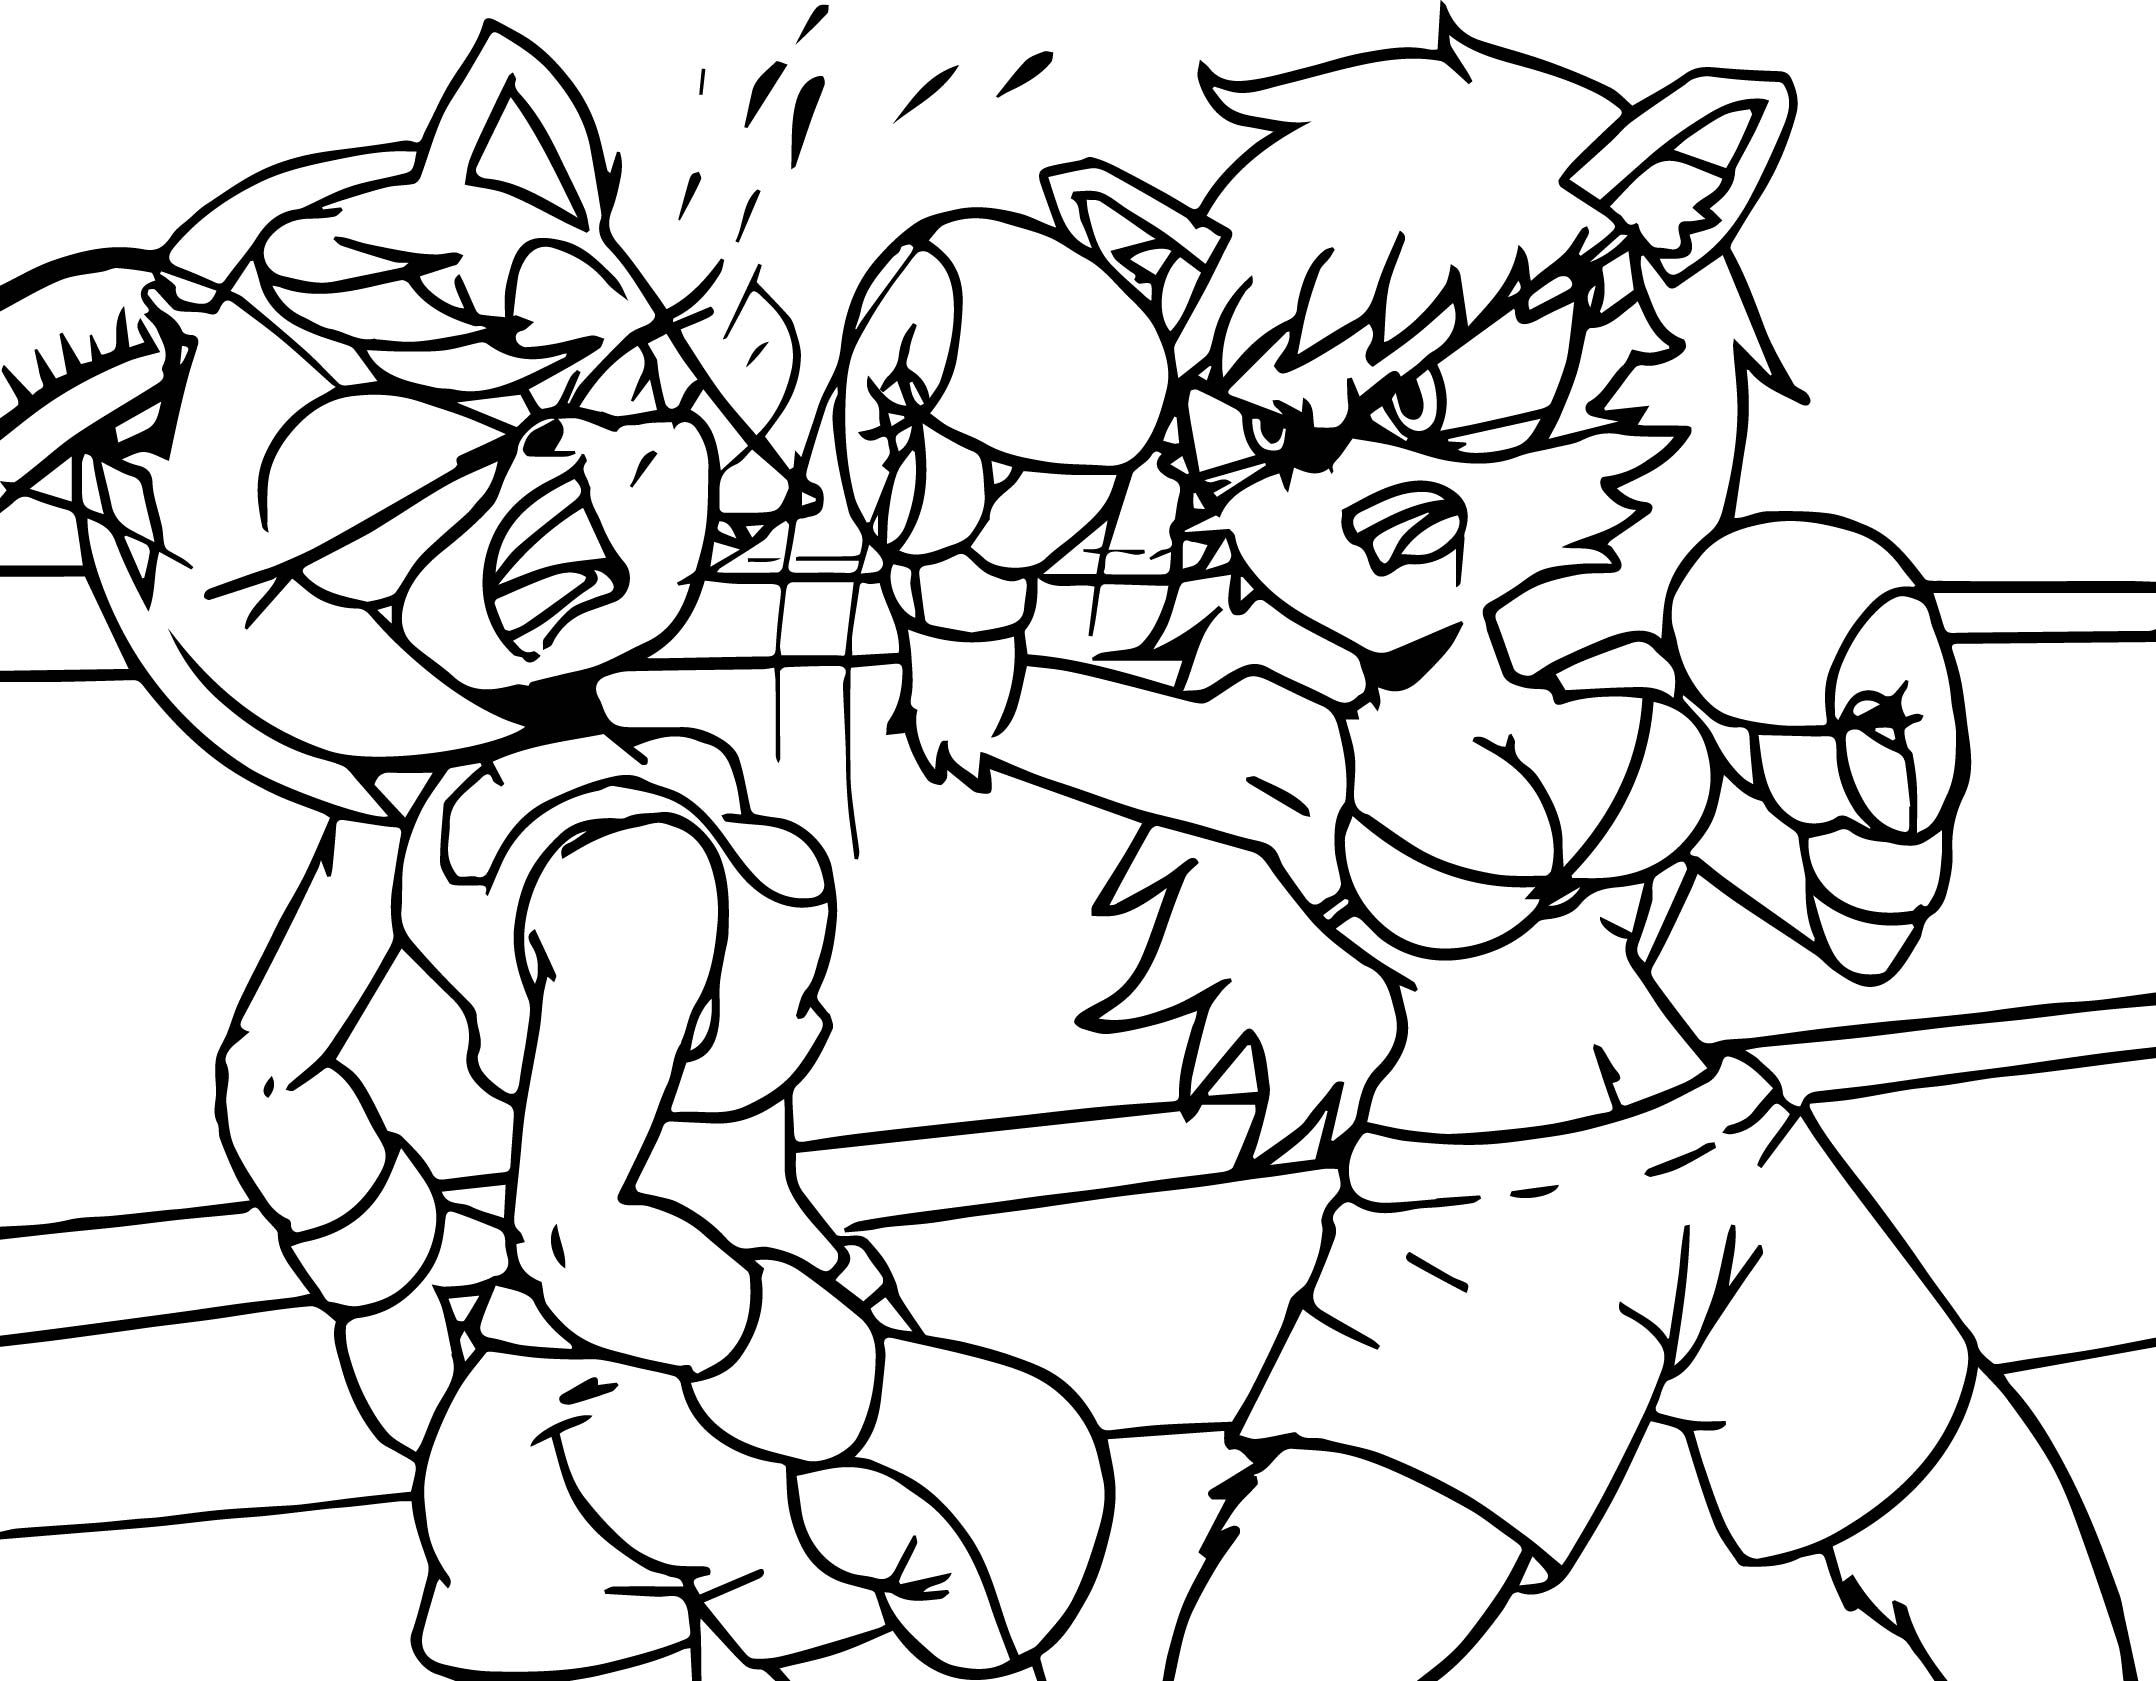 Awesome Amy Rose Boxing Coloring Page